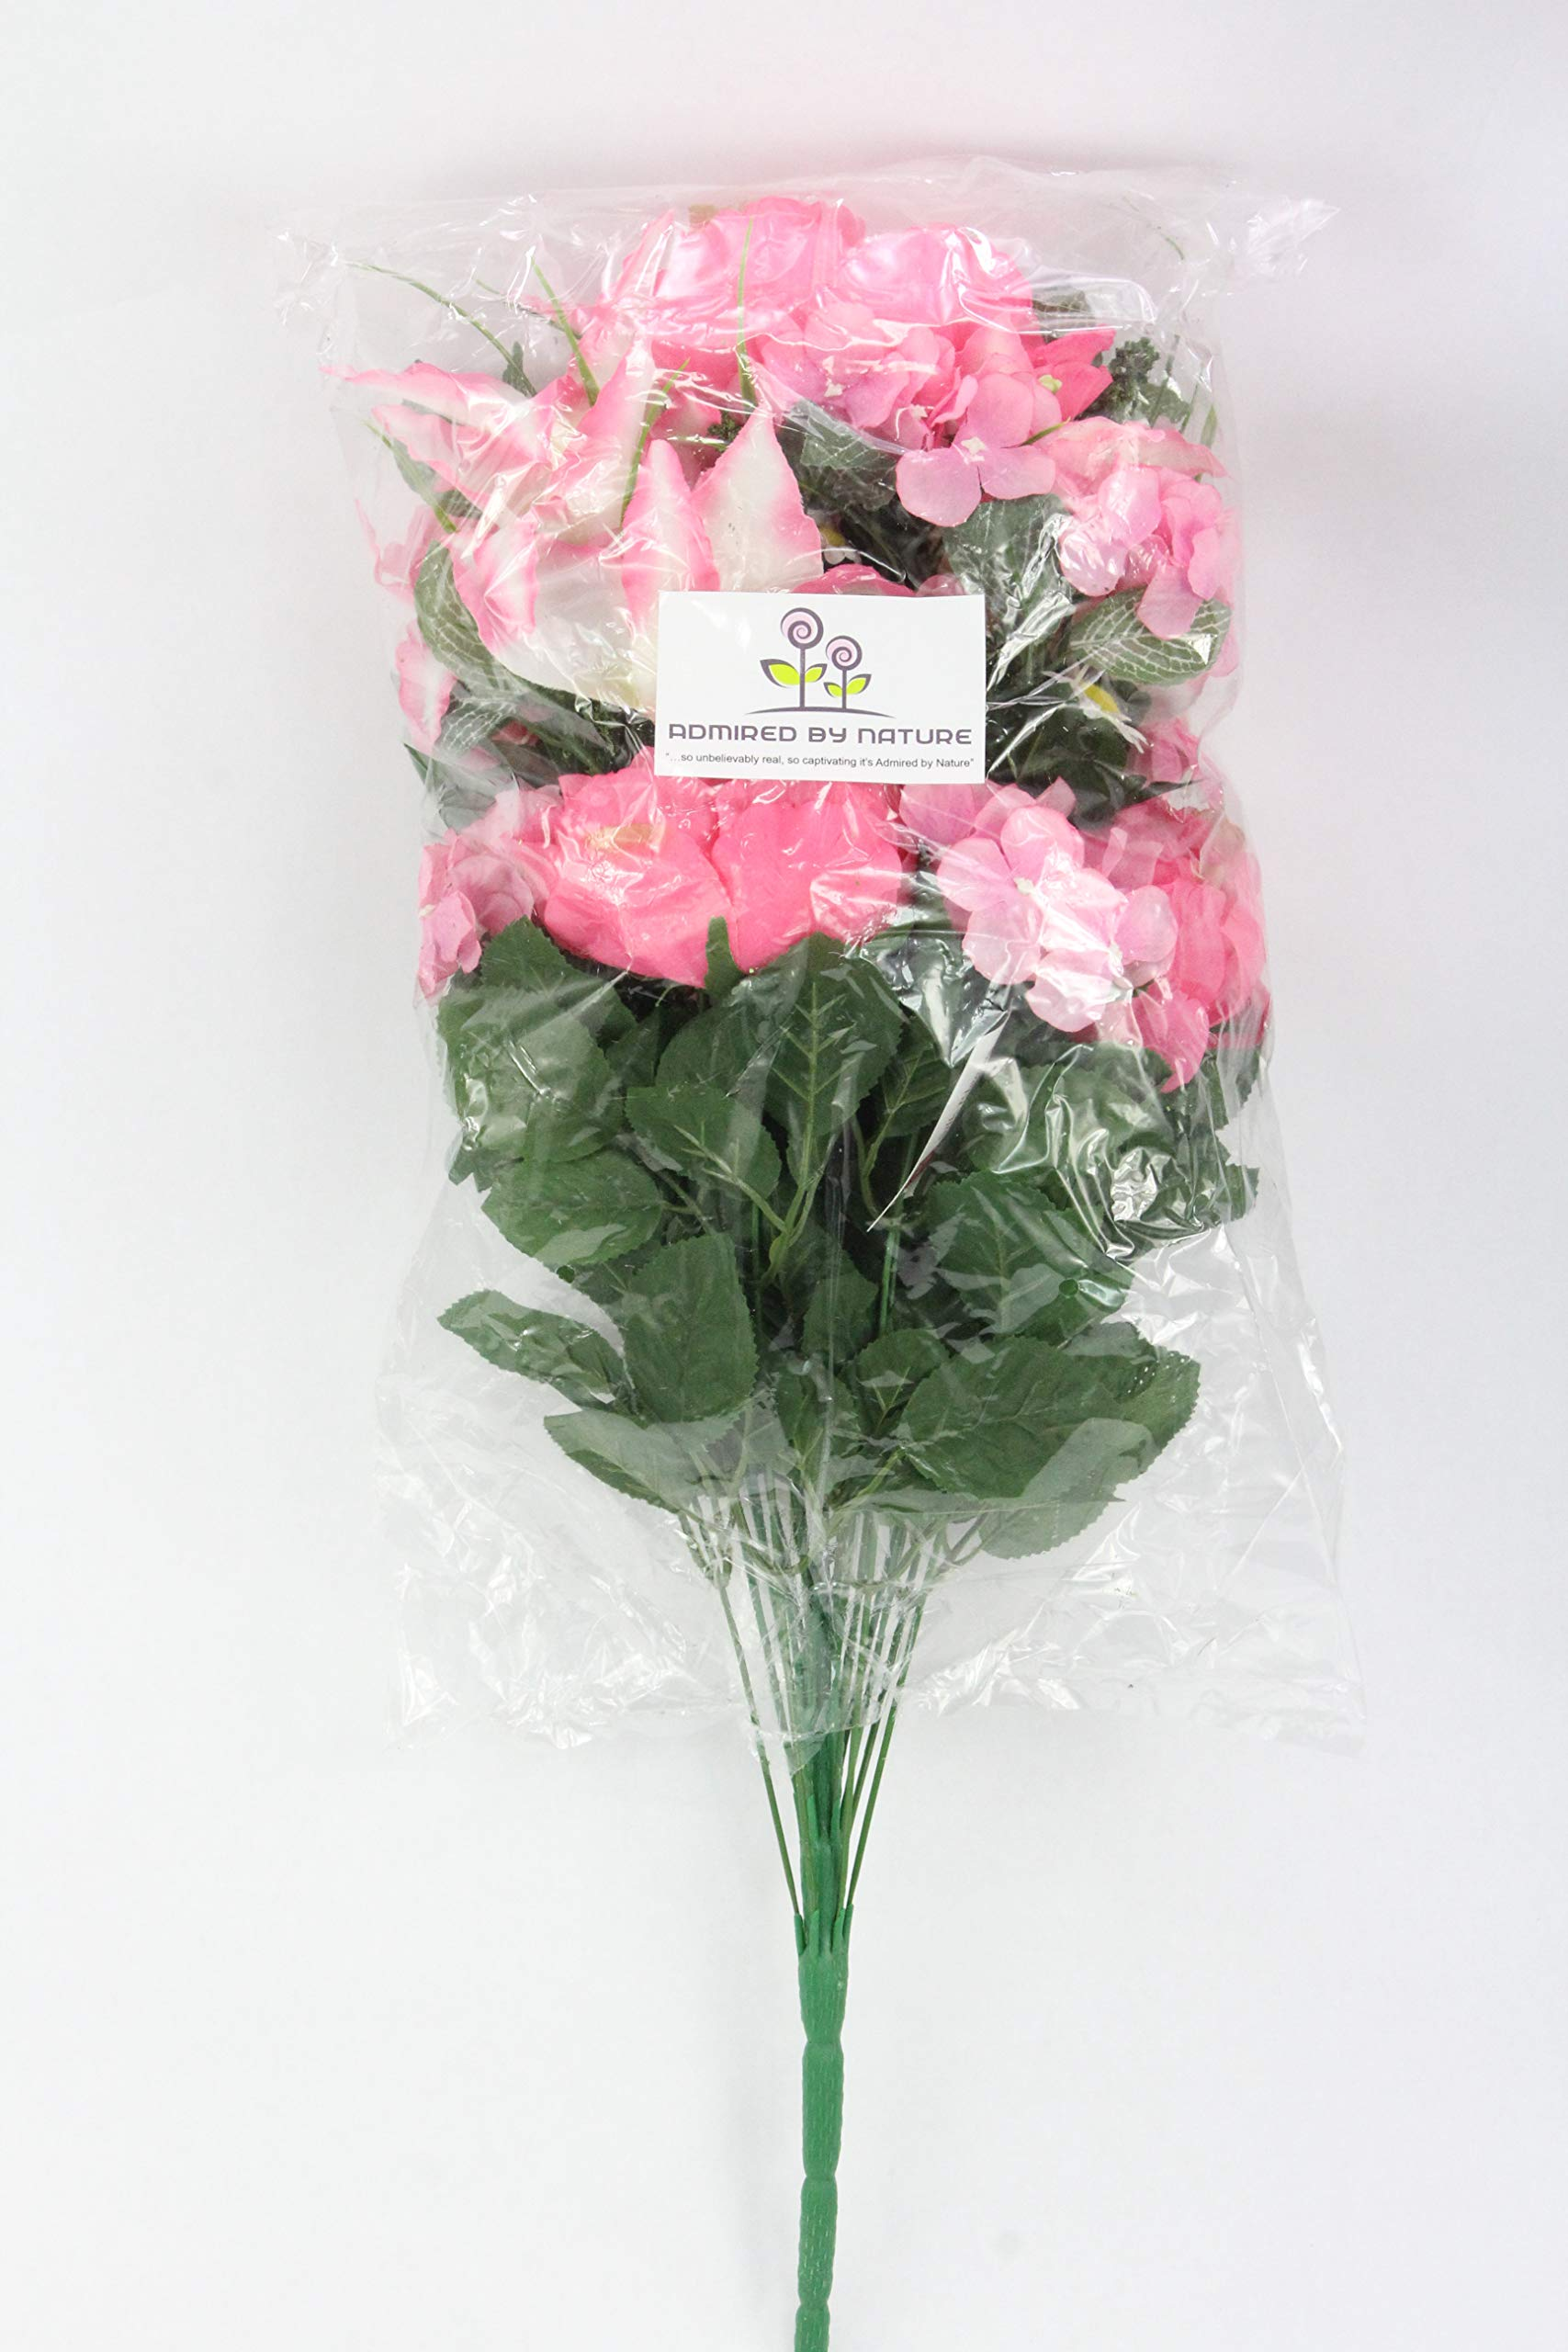 Admired-By-Nature-24-Stems-Artificial-Full-Blooming-Tiger-Lily-Peony-Hydrangea-with-Green-Foliage-Mixed-Flowers-Bush-for-Mothers-Day-or-Decoration-for-Home-Restaurant-Office-Wedding